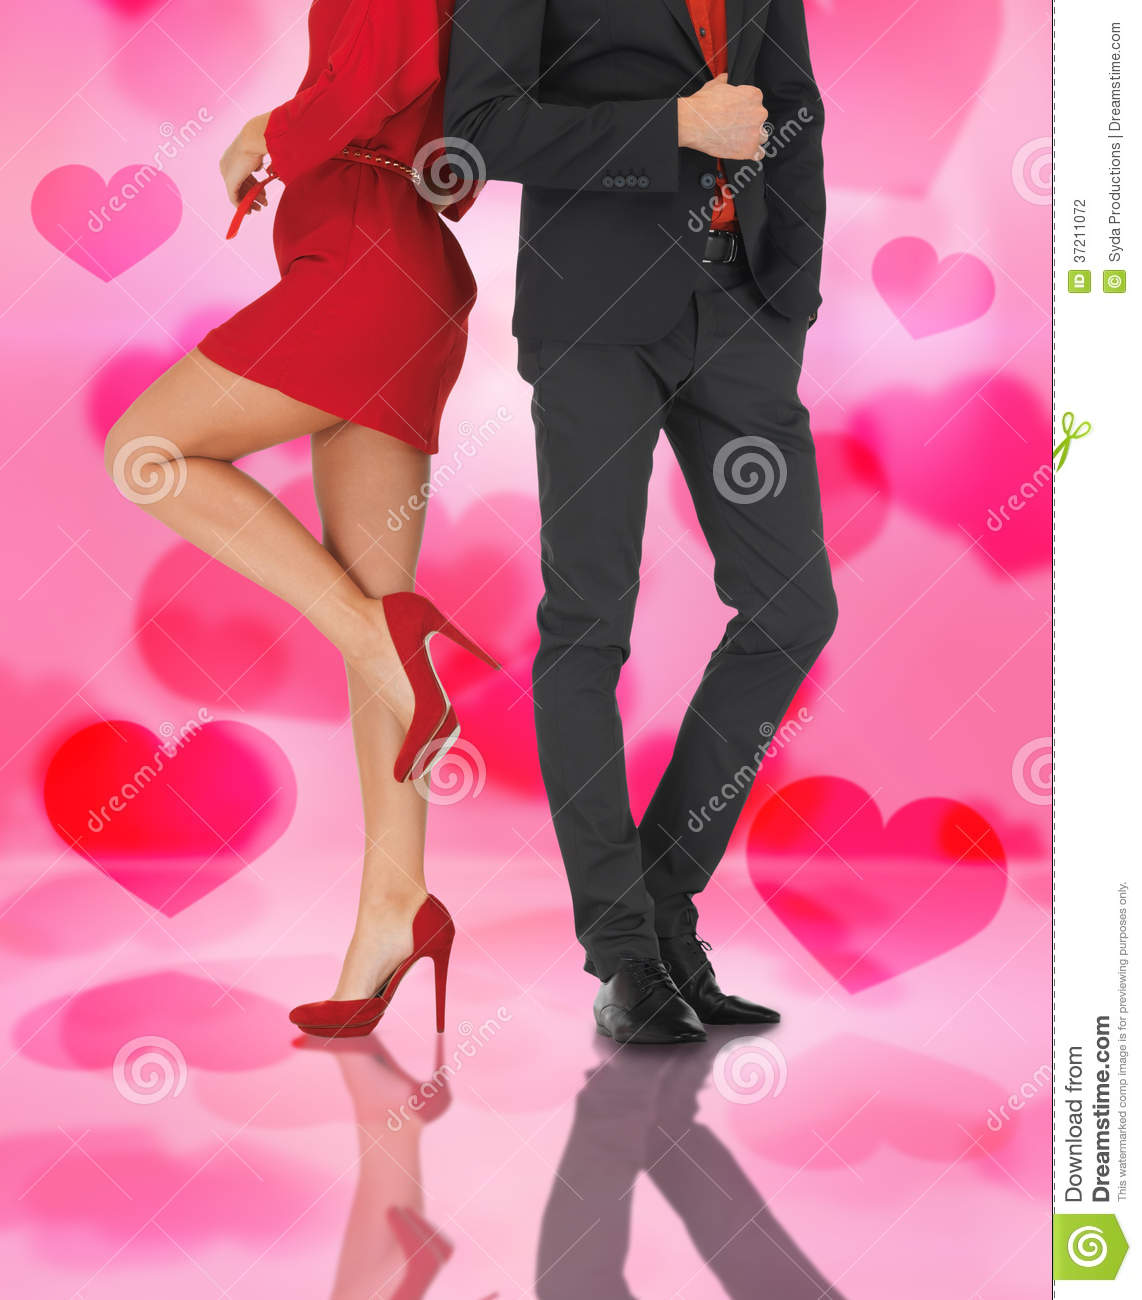 Man In Suit And Woman In Red Dress Stock Photography Image 37211072